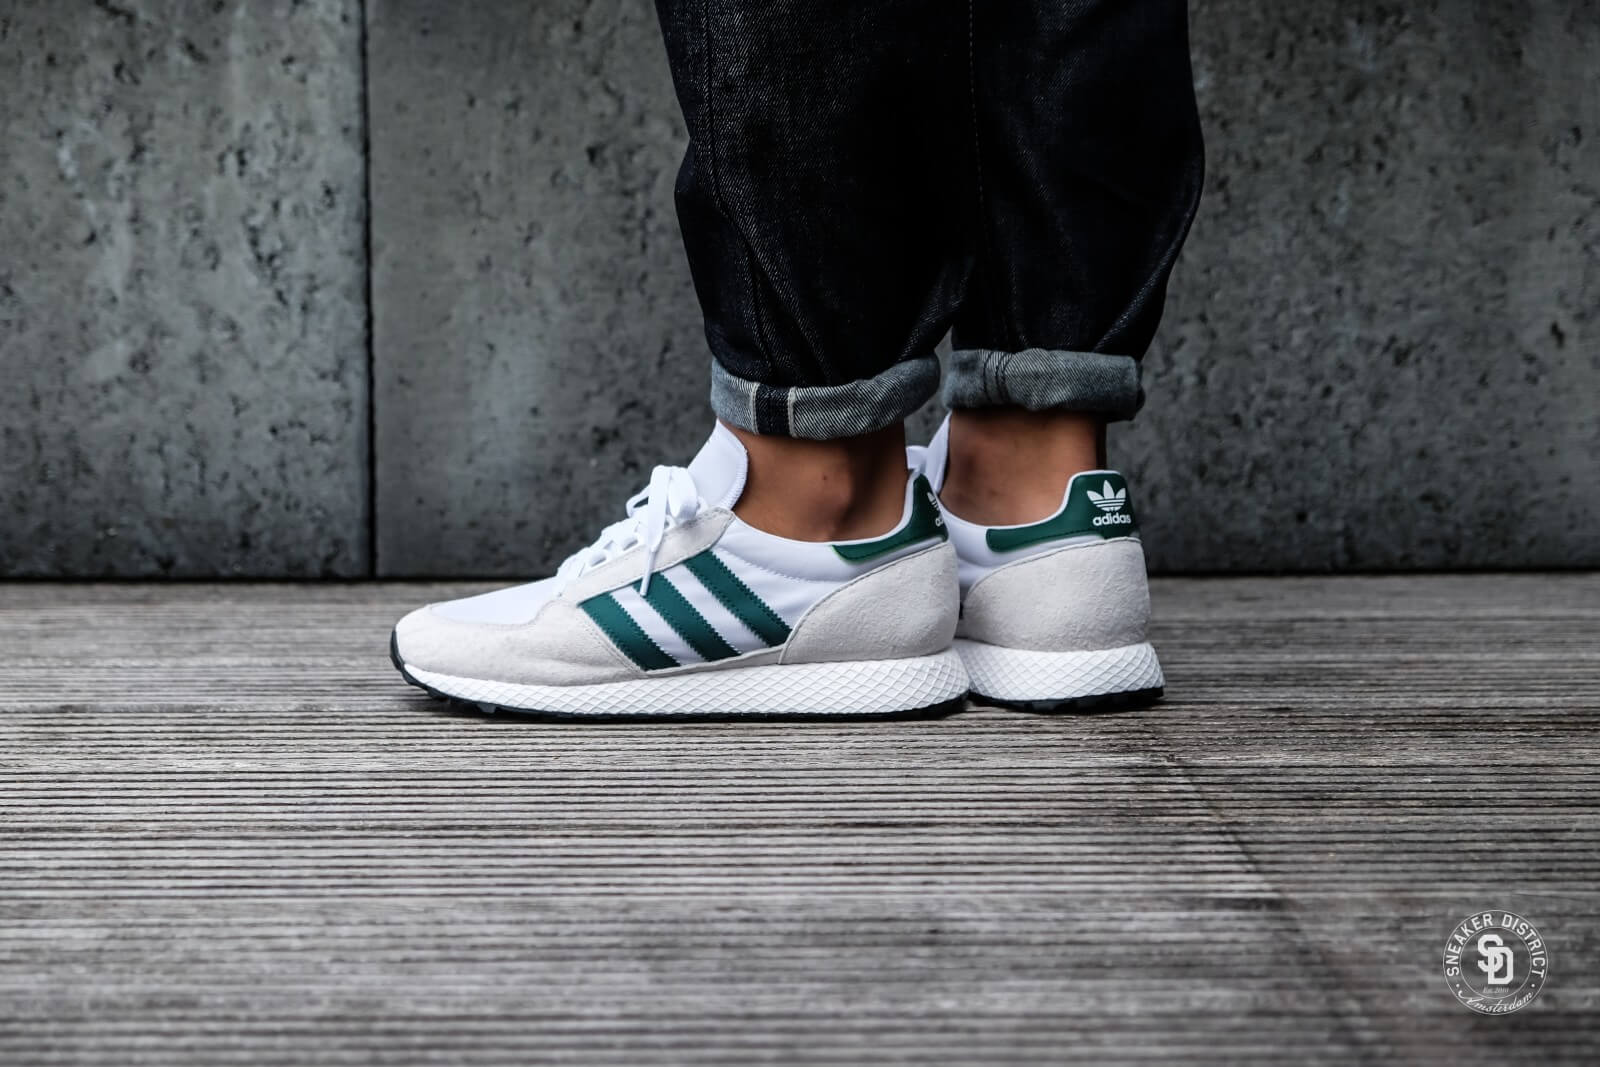 Adidas Forest Grove Crystal White/Core